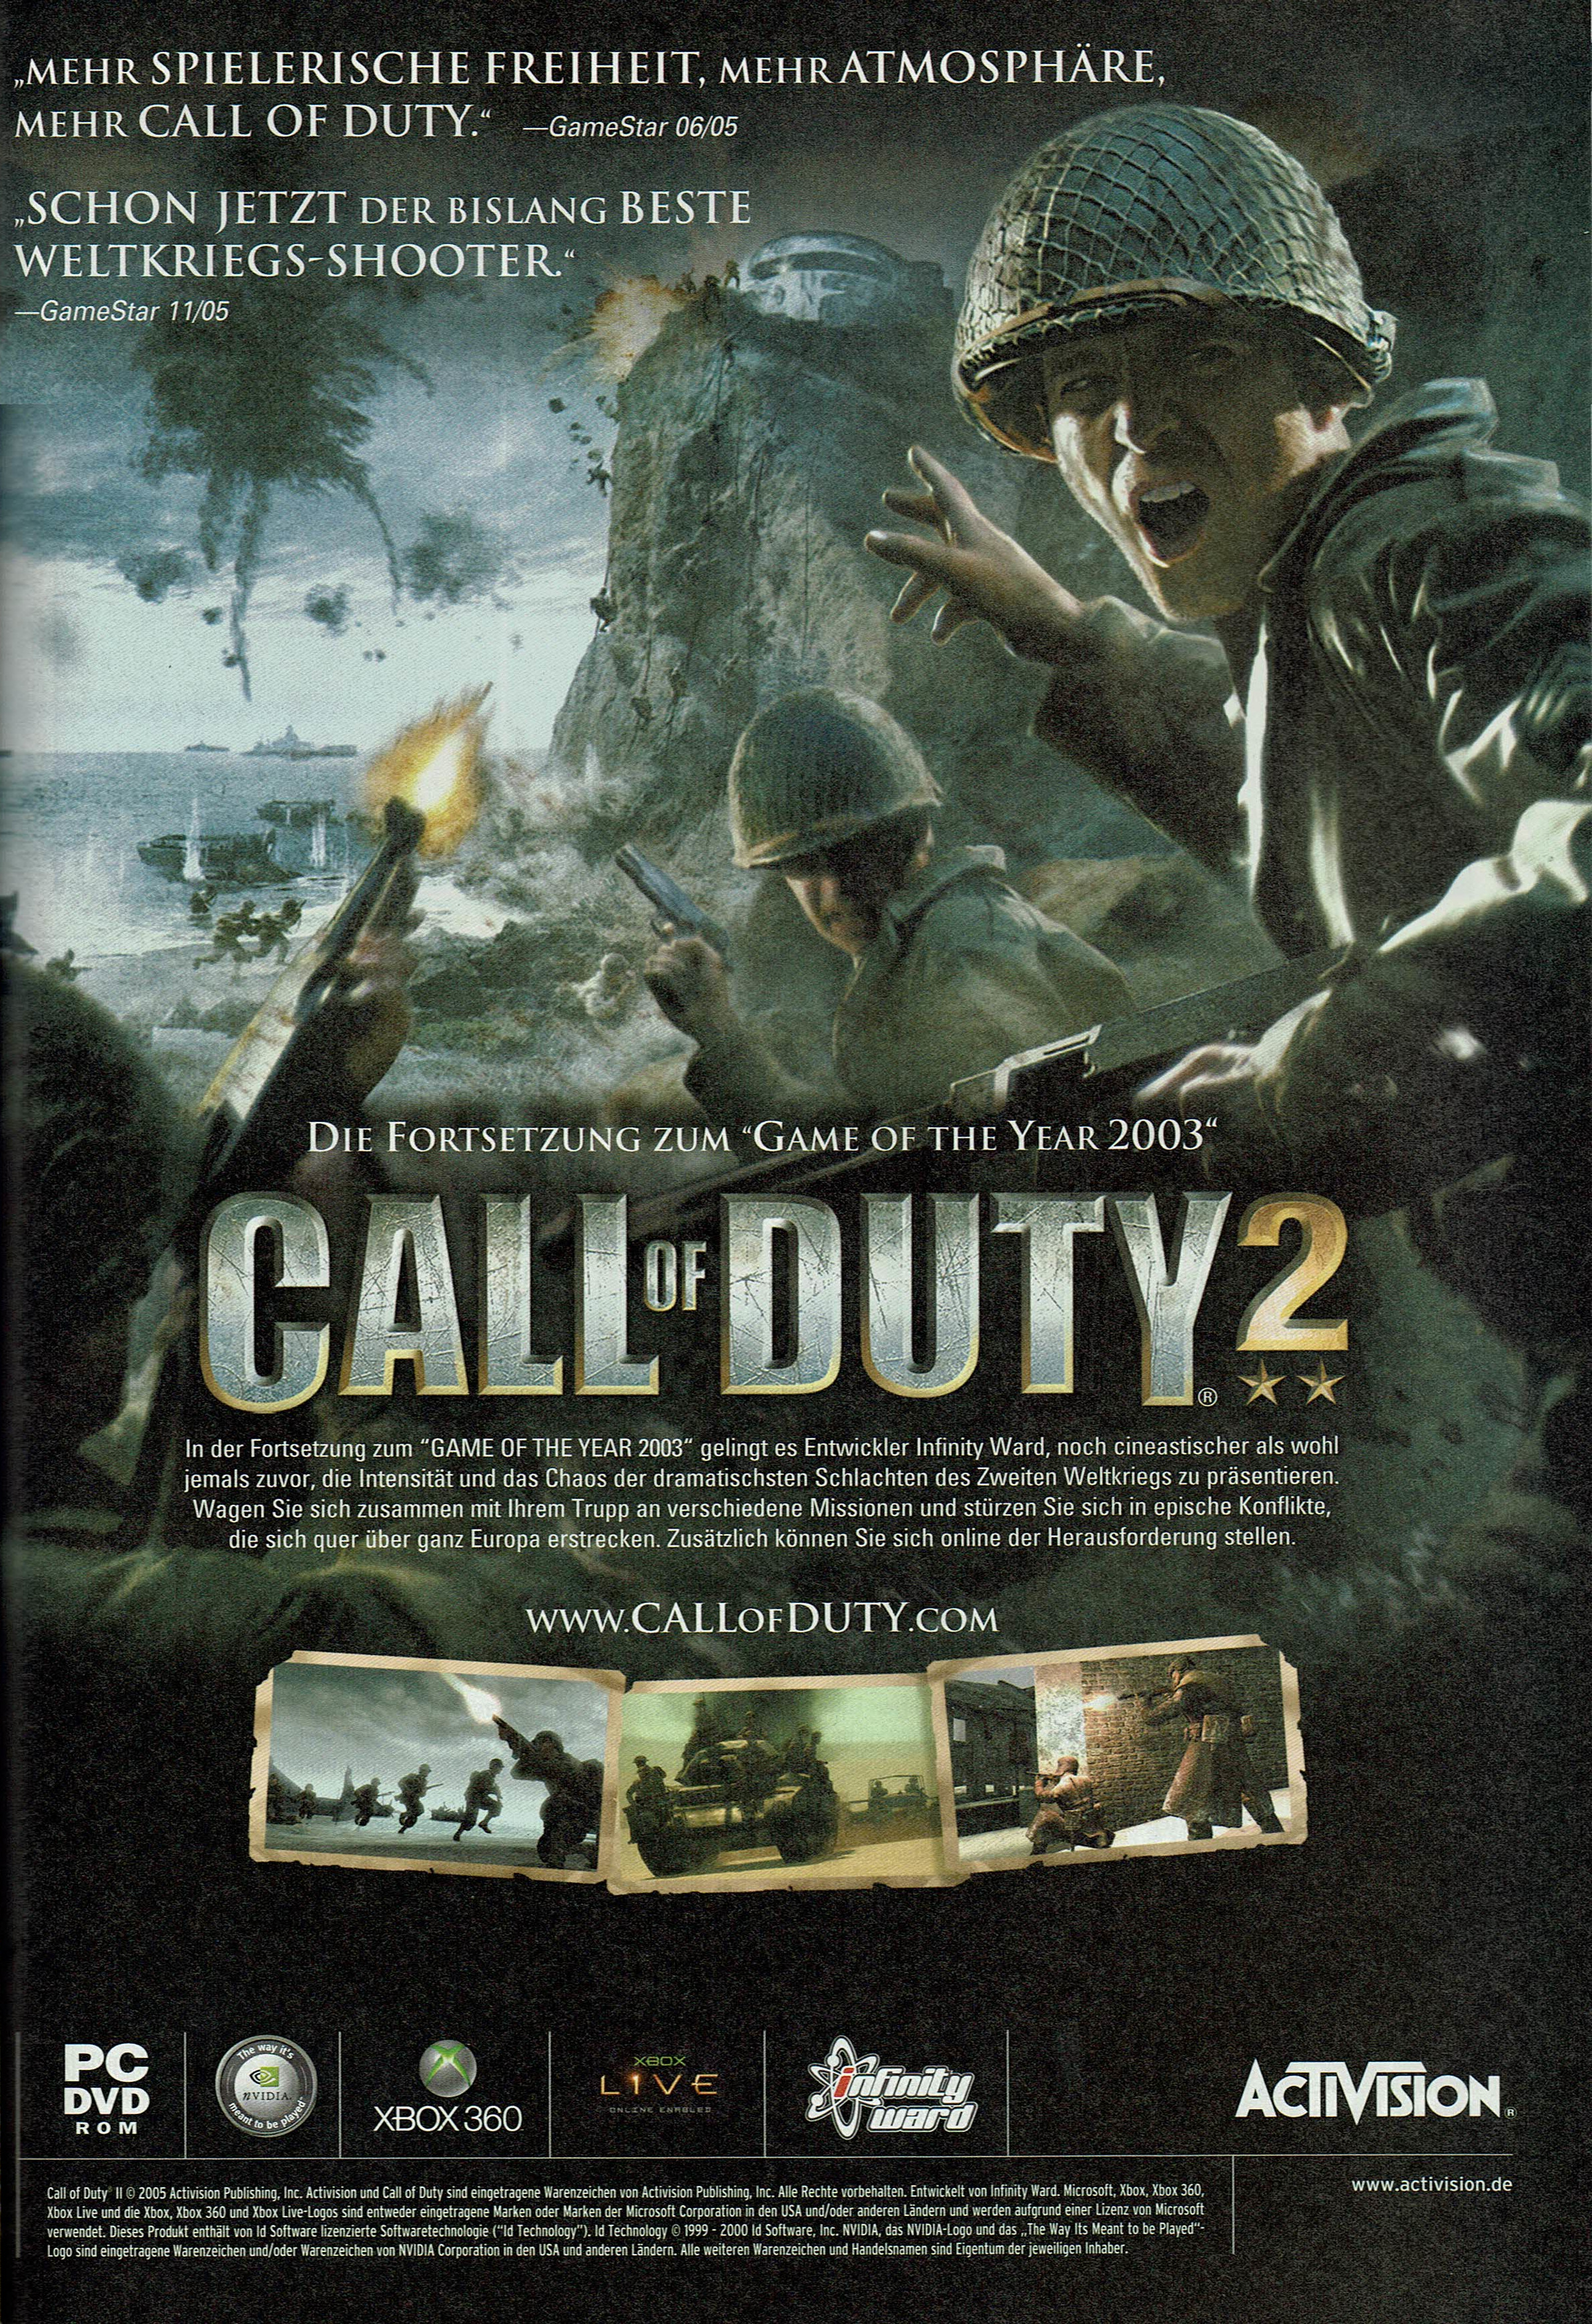 Call of Duty 2 (2005) promotional art - MobyGames